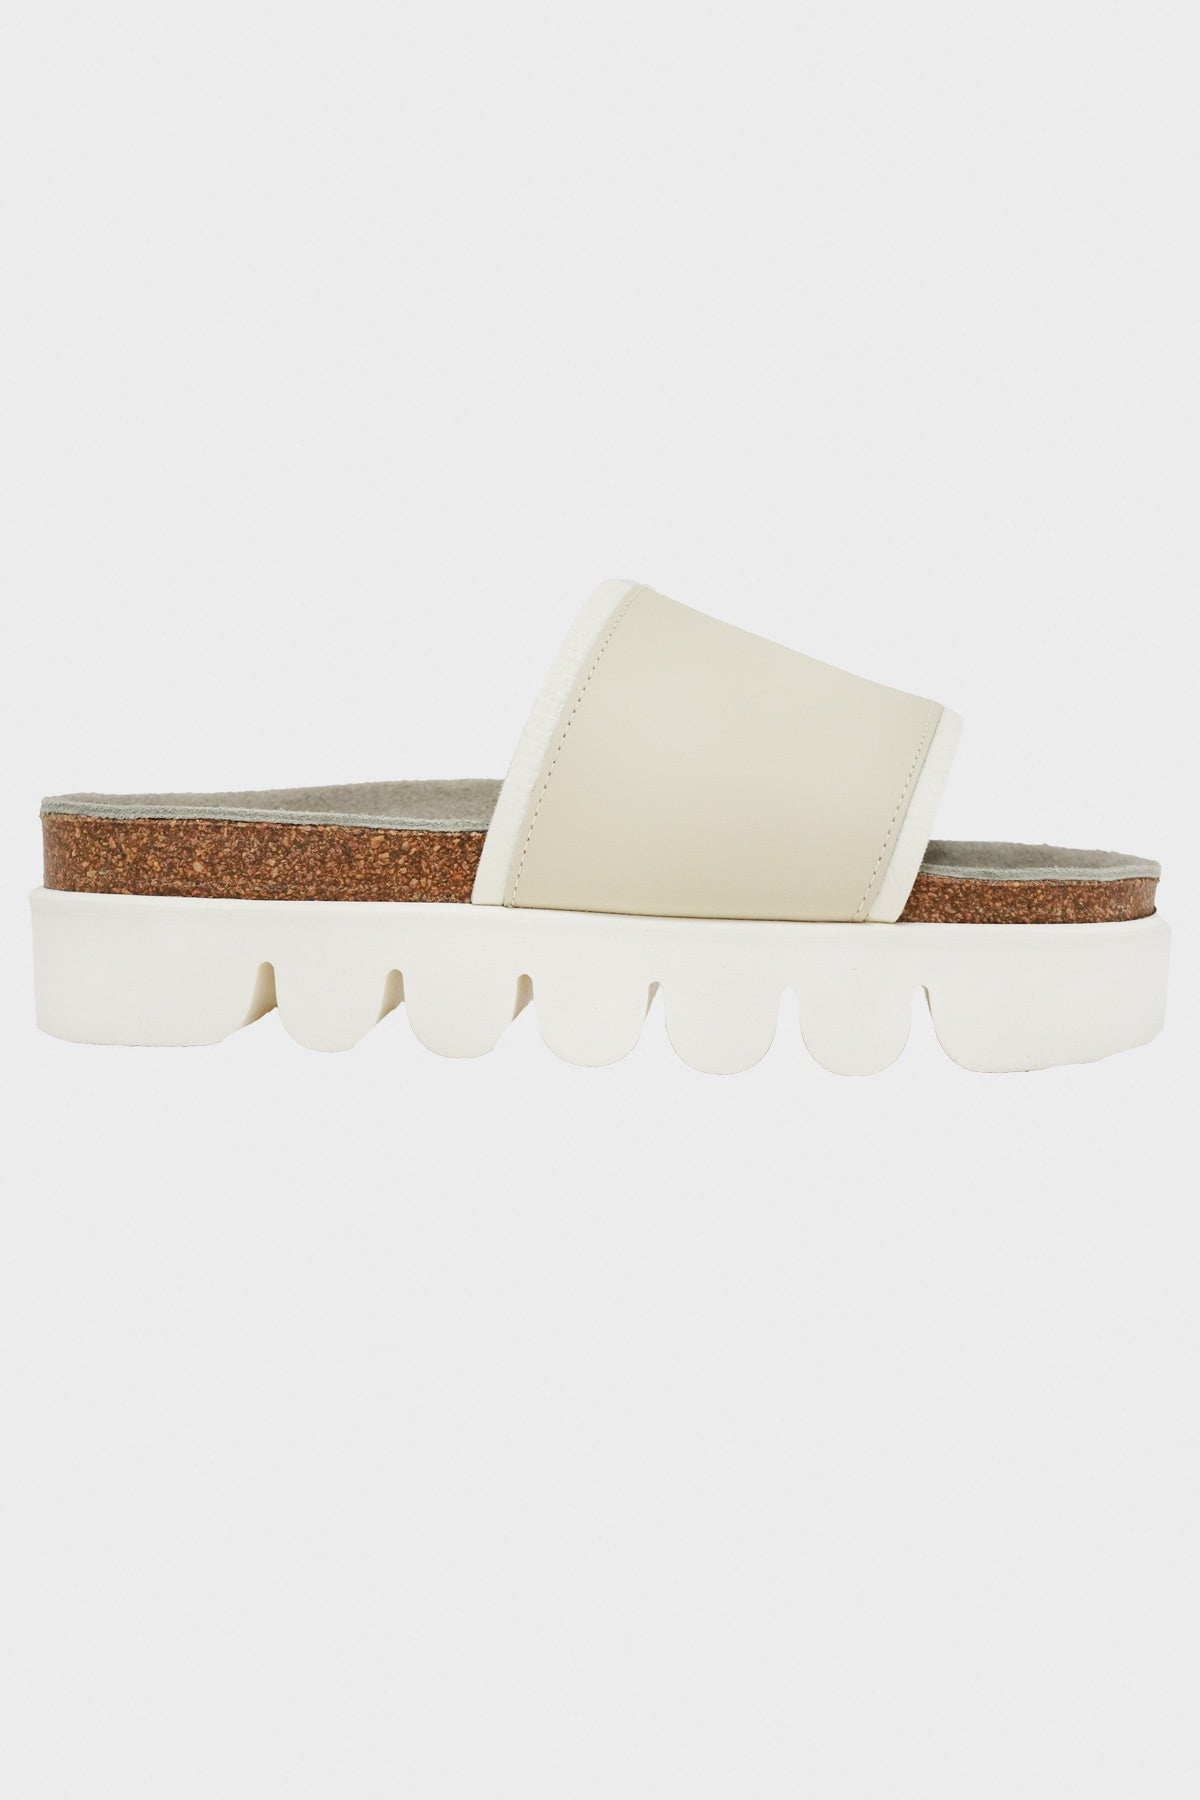 Hender Scheme - Caterpillar - White - Canoe Club